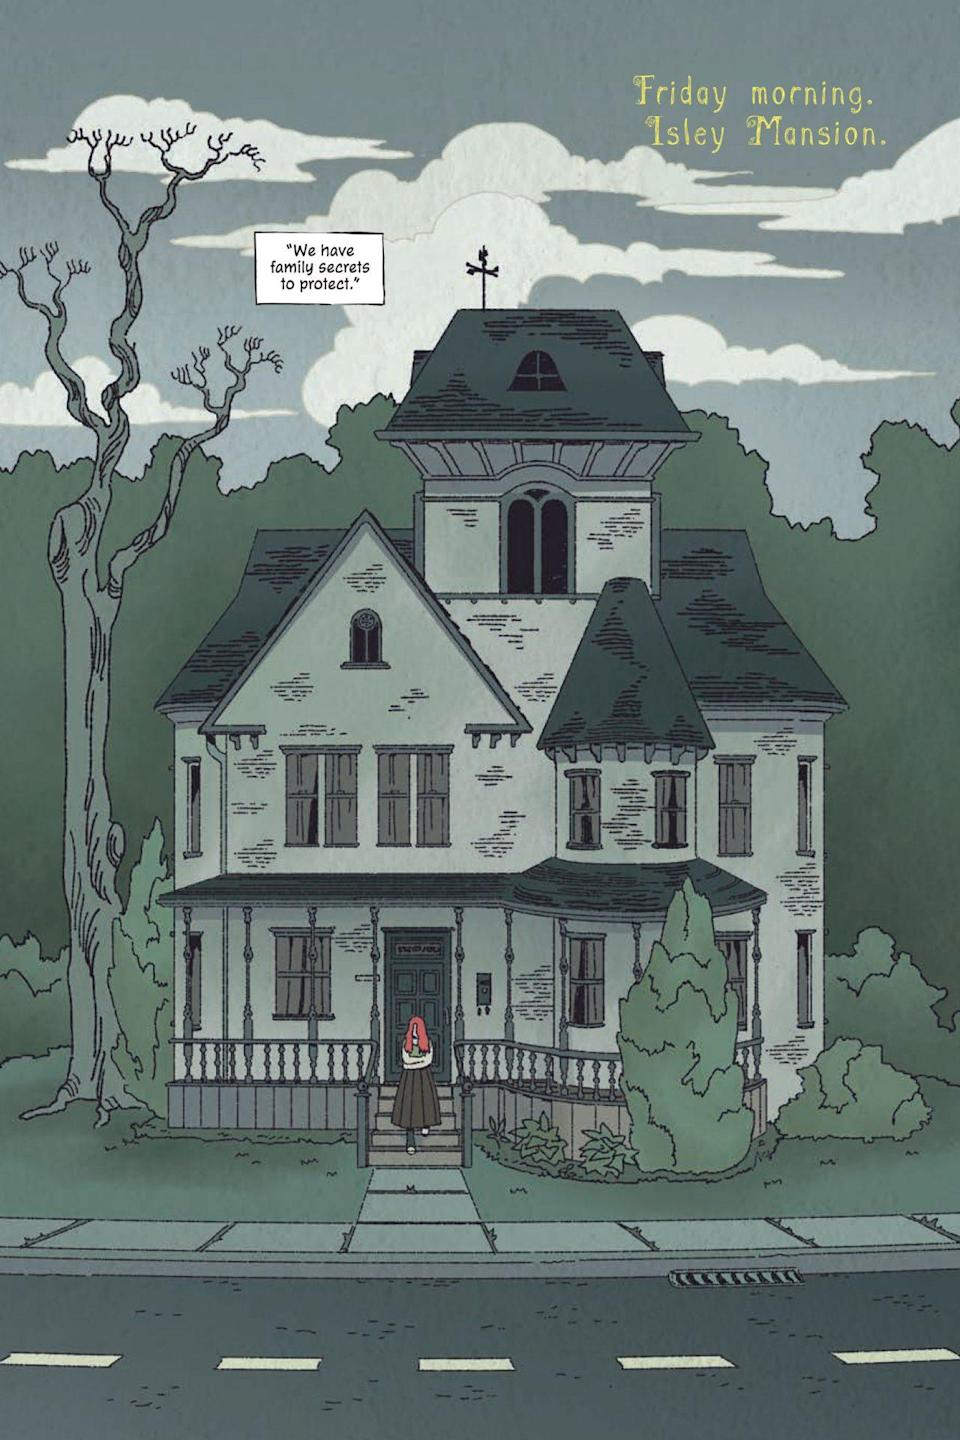 A page from Poison Ivy Thorns shows Ivy's very cool creepy house